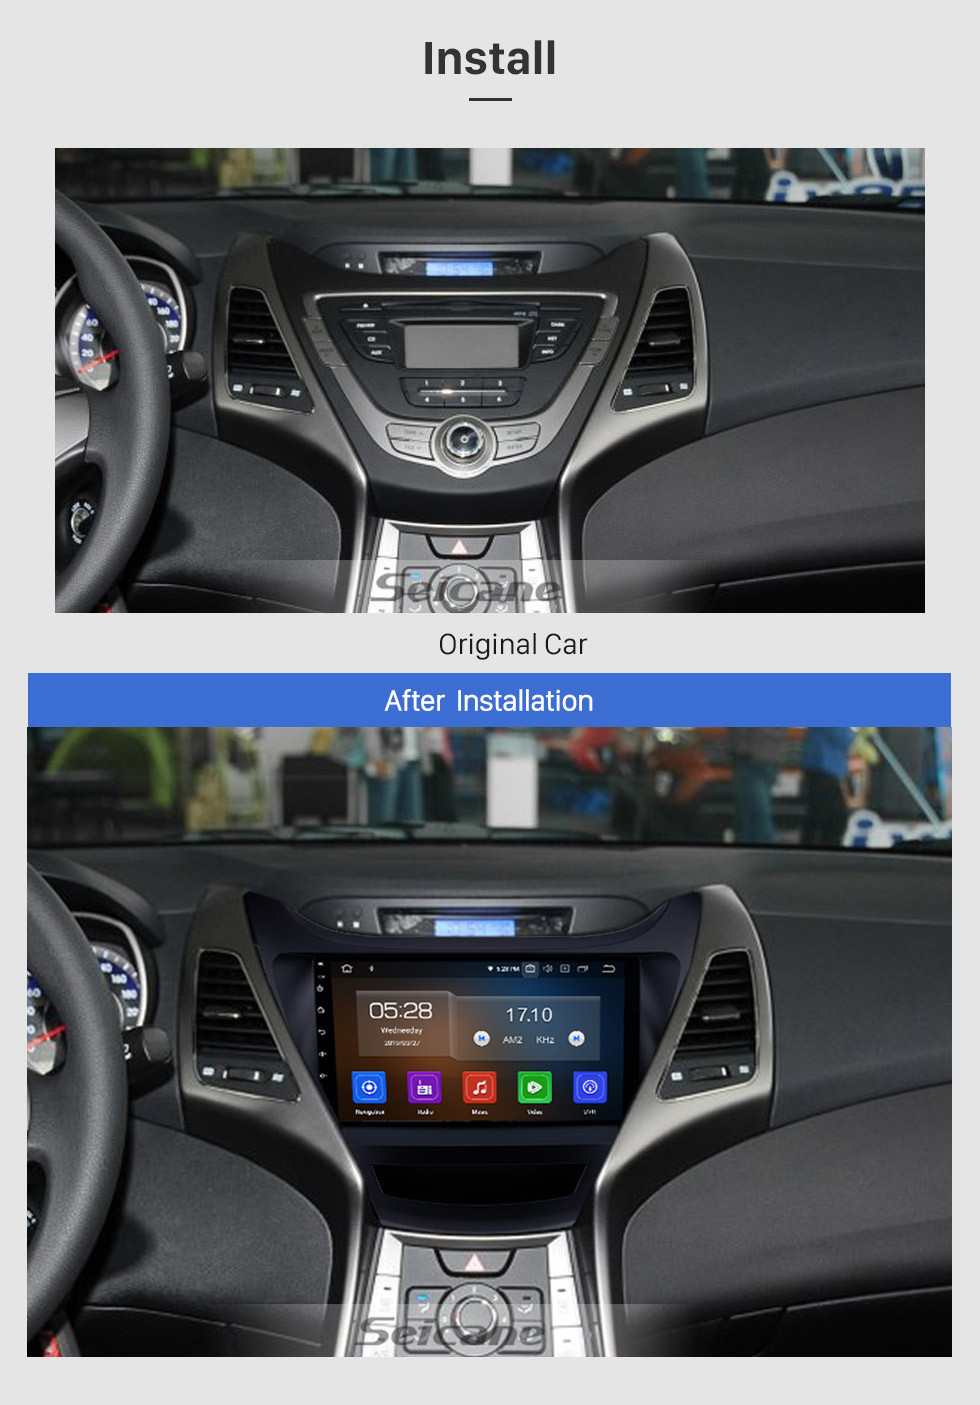 Seicane 9 inch Android 9.0 HD Touch Screen Radio for 2014-2015 Hyundai Elantra with GPS Navigation system Bluetooth USB WIFI OBD2 TPMS Mirror Link Rearview Camera